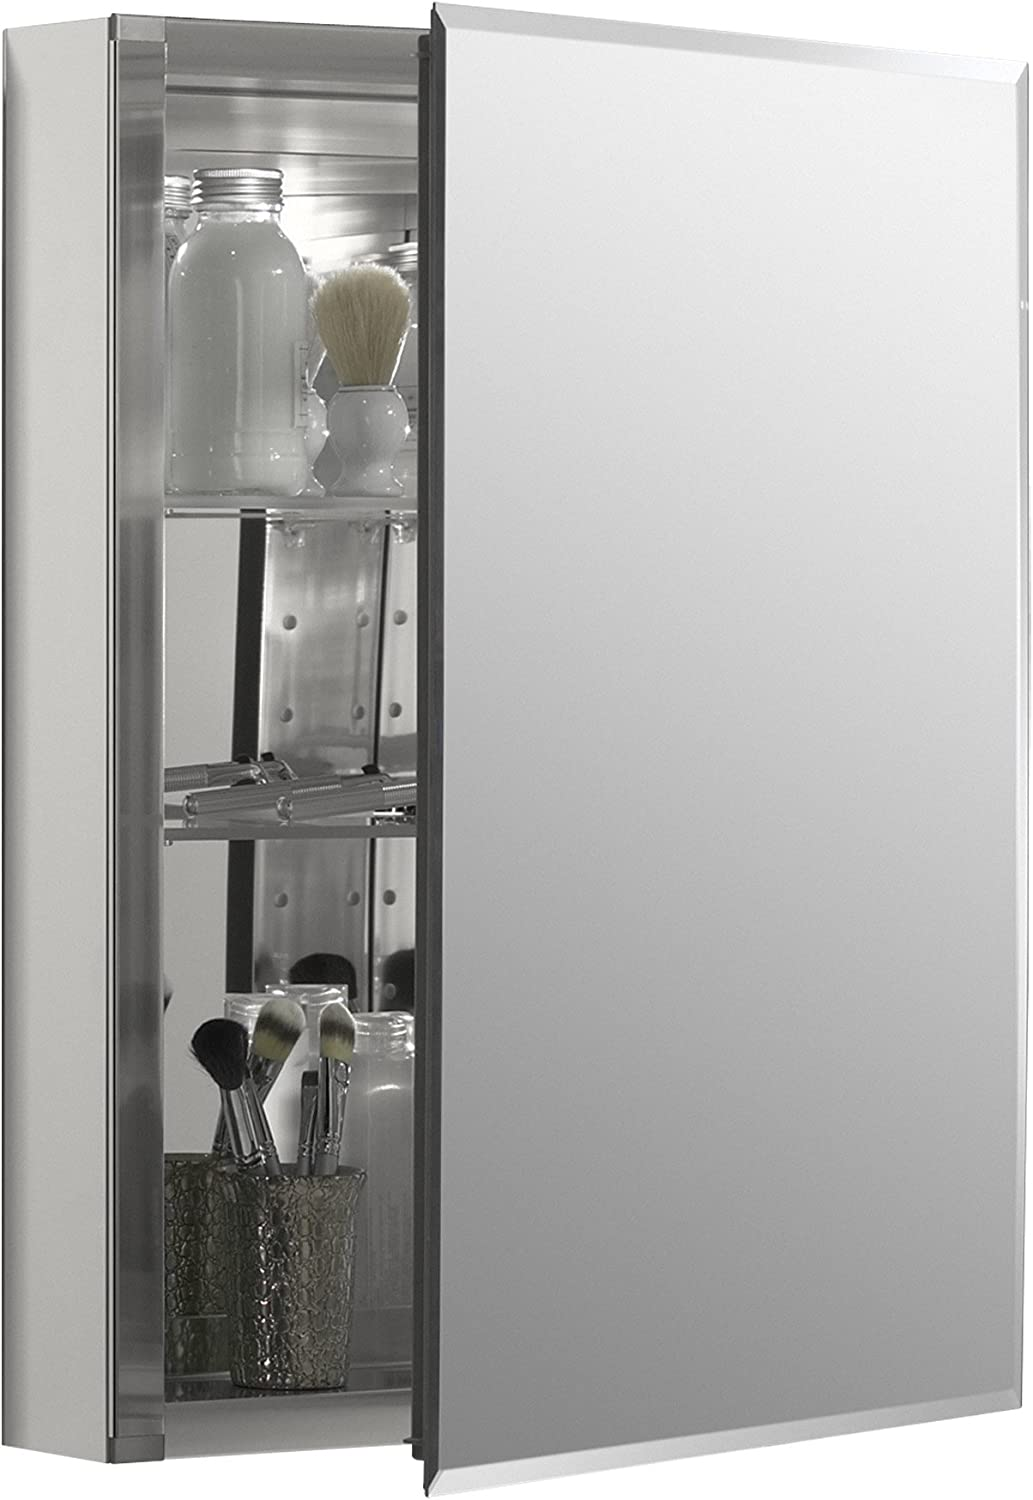 Frameless 20 Inch X 26 Inch Aluminum Bathroom Medicine Cabinet; ; Recess Or Surface Mount